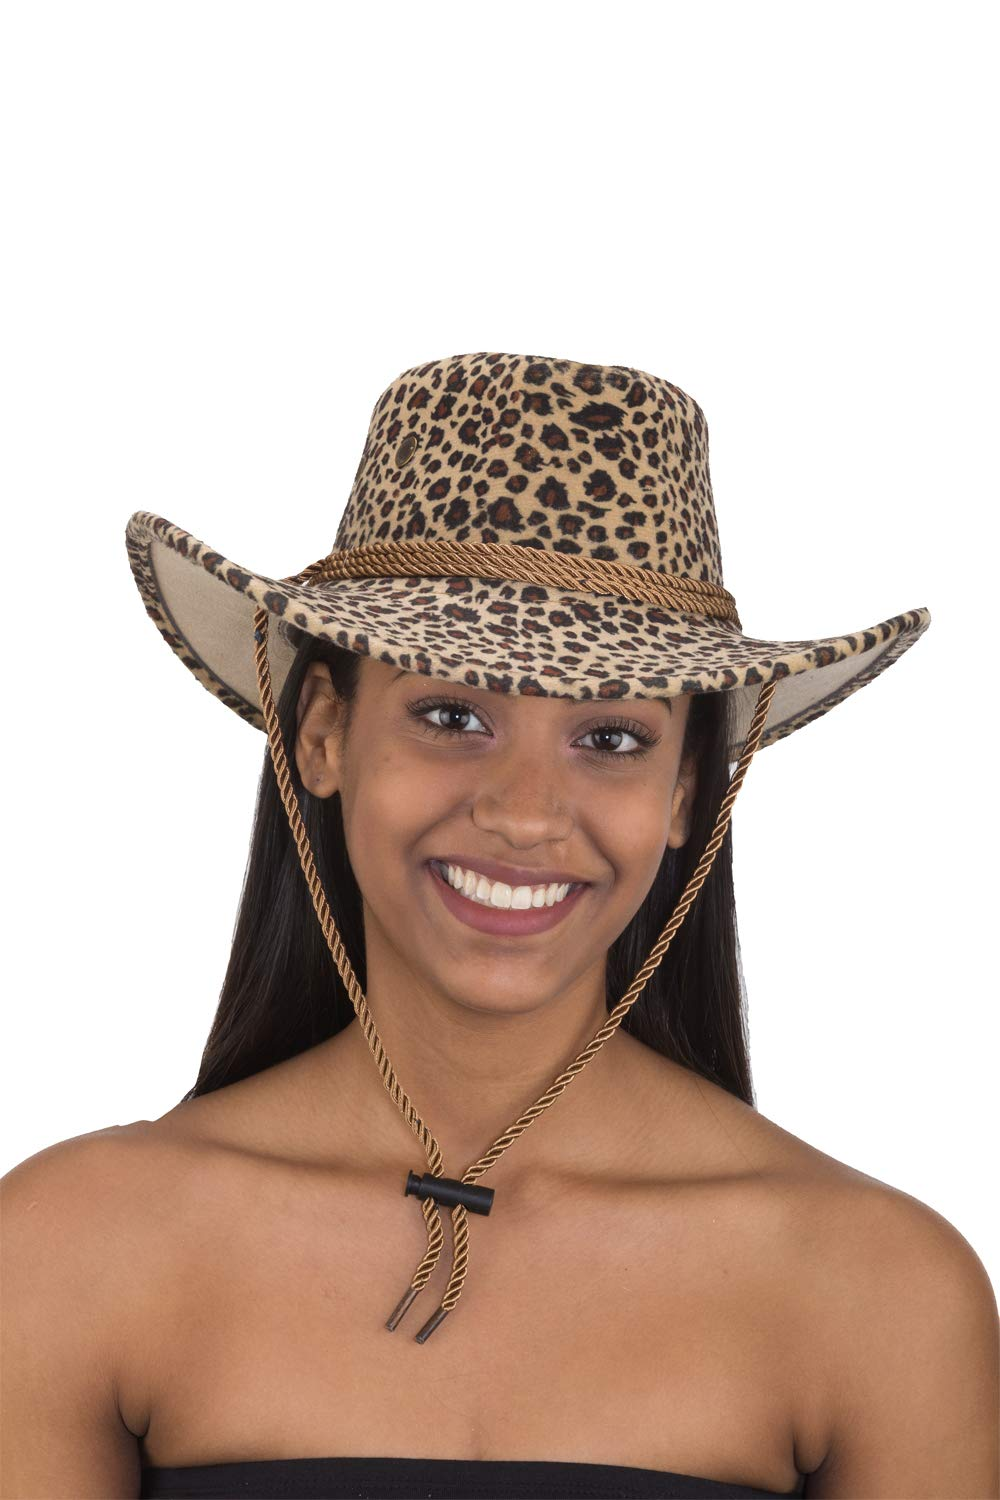 Jacobson Straw Cowboy Hat - Leopard Print Outback with Chin Cord